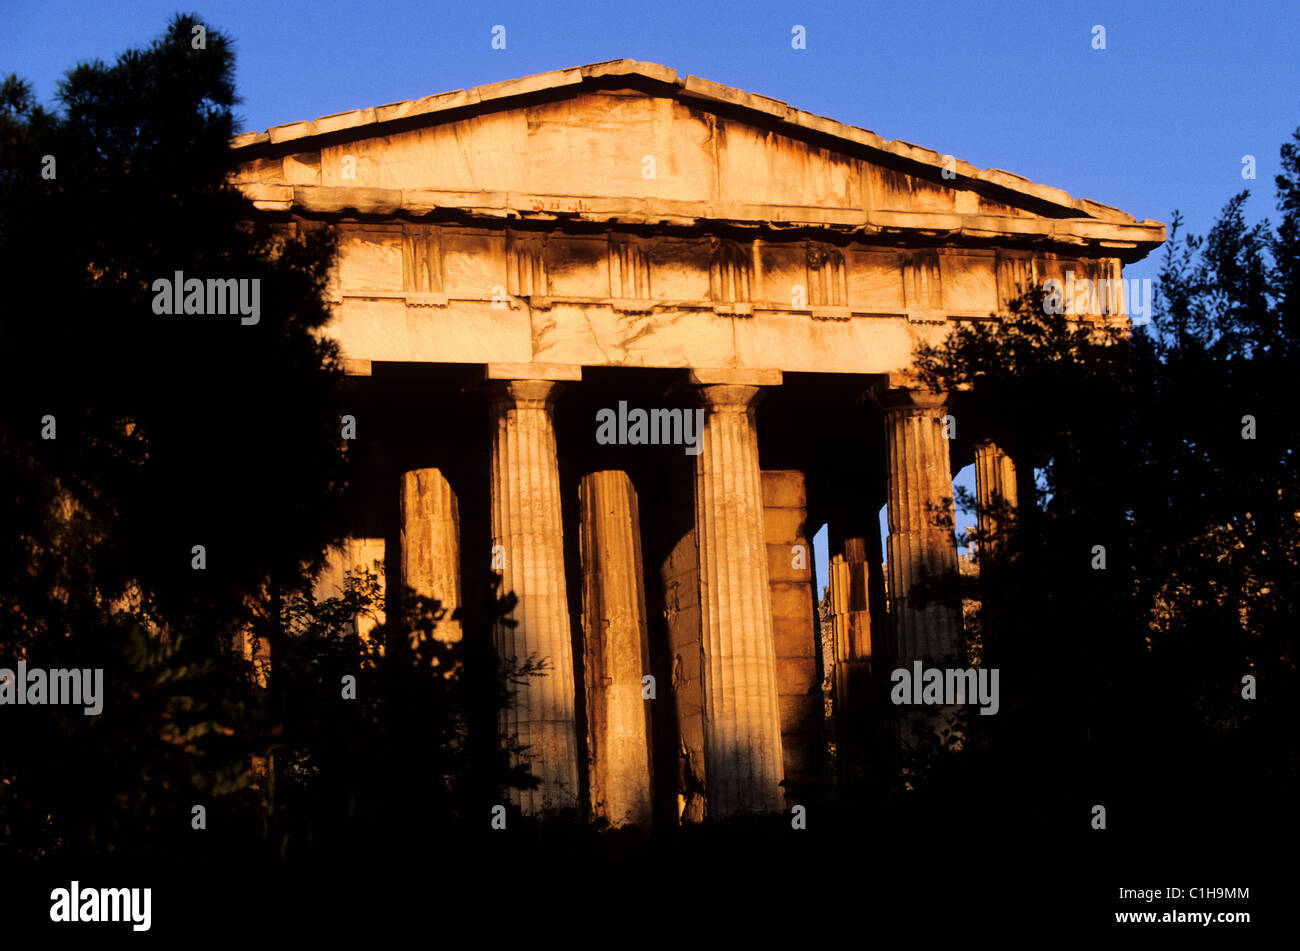 Greece, Athens, the Theseion (a 5th century BC doric temple) - Stock Image